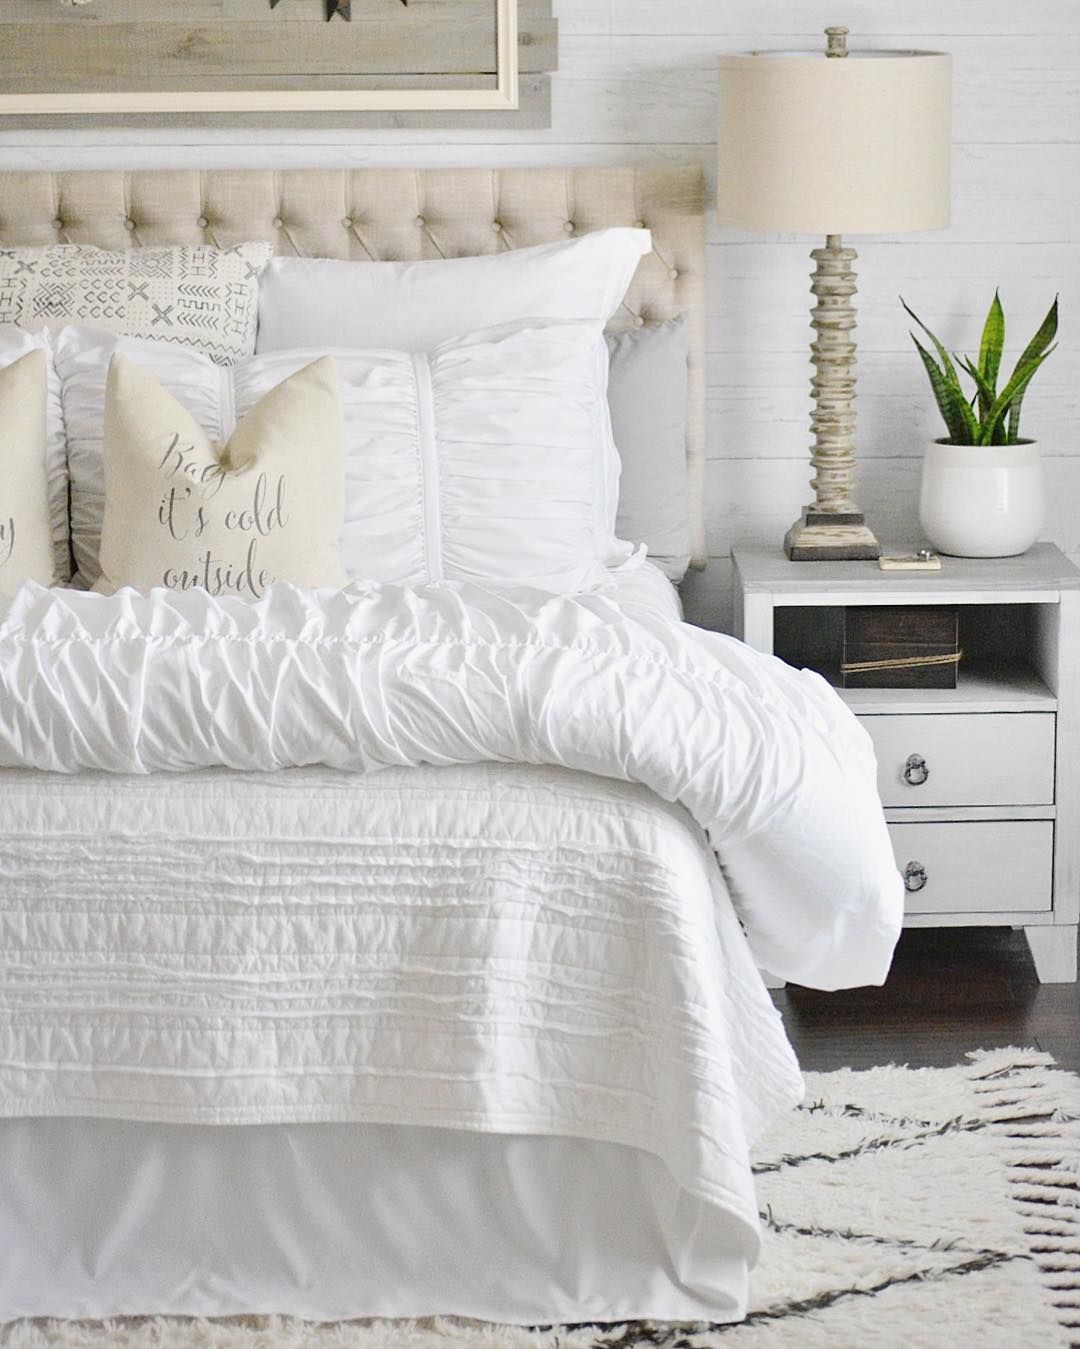 Shiplap Feature Wall In A Master Bedroom Using Temporary Peel And Stick Wallpaper Home Bedroom Inspirations Home Decor